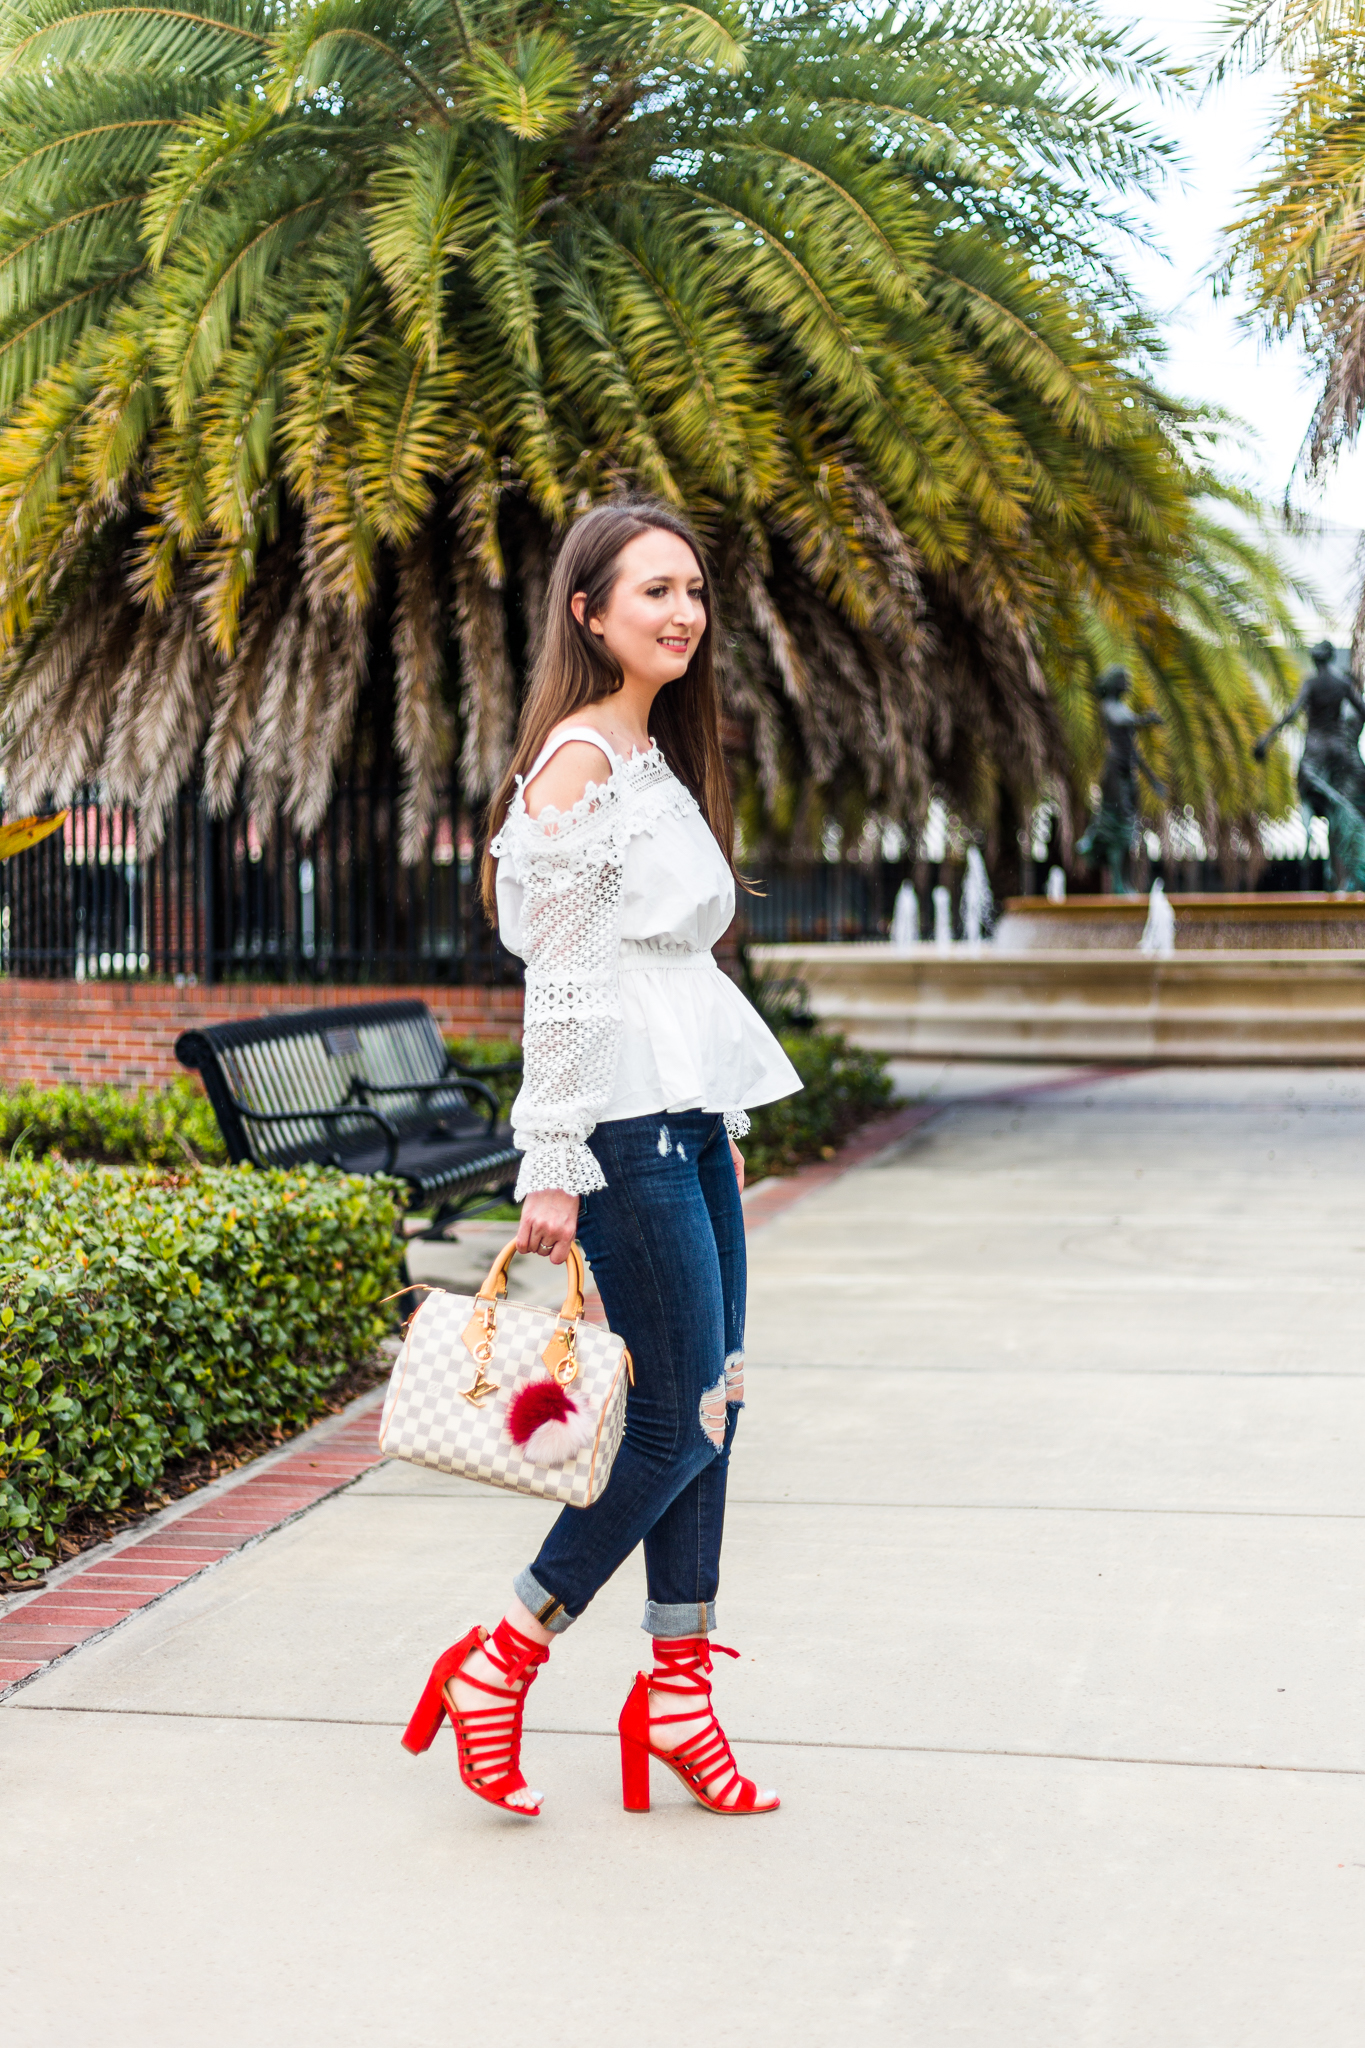 A pop of color with Sam Edelman heels, fashion, red heels, Sam Edelman Yarina sandal, Frame Le skinny de jeanne, Louis Vuitton speedy 25 damier azur, frame denim, casual outfit, Bardot top